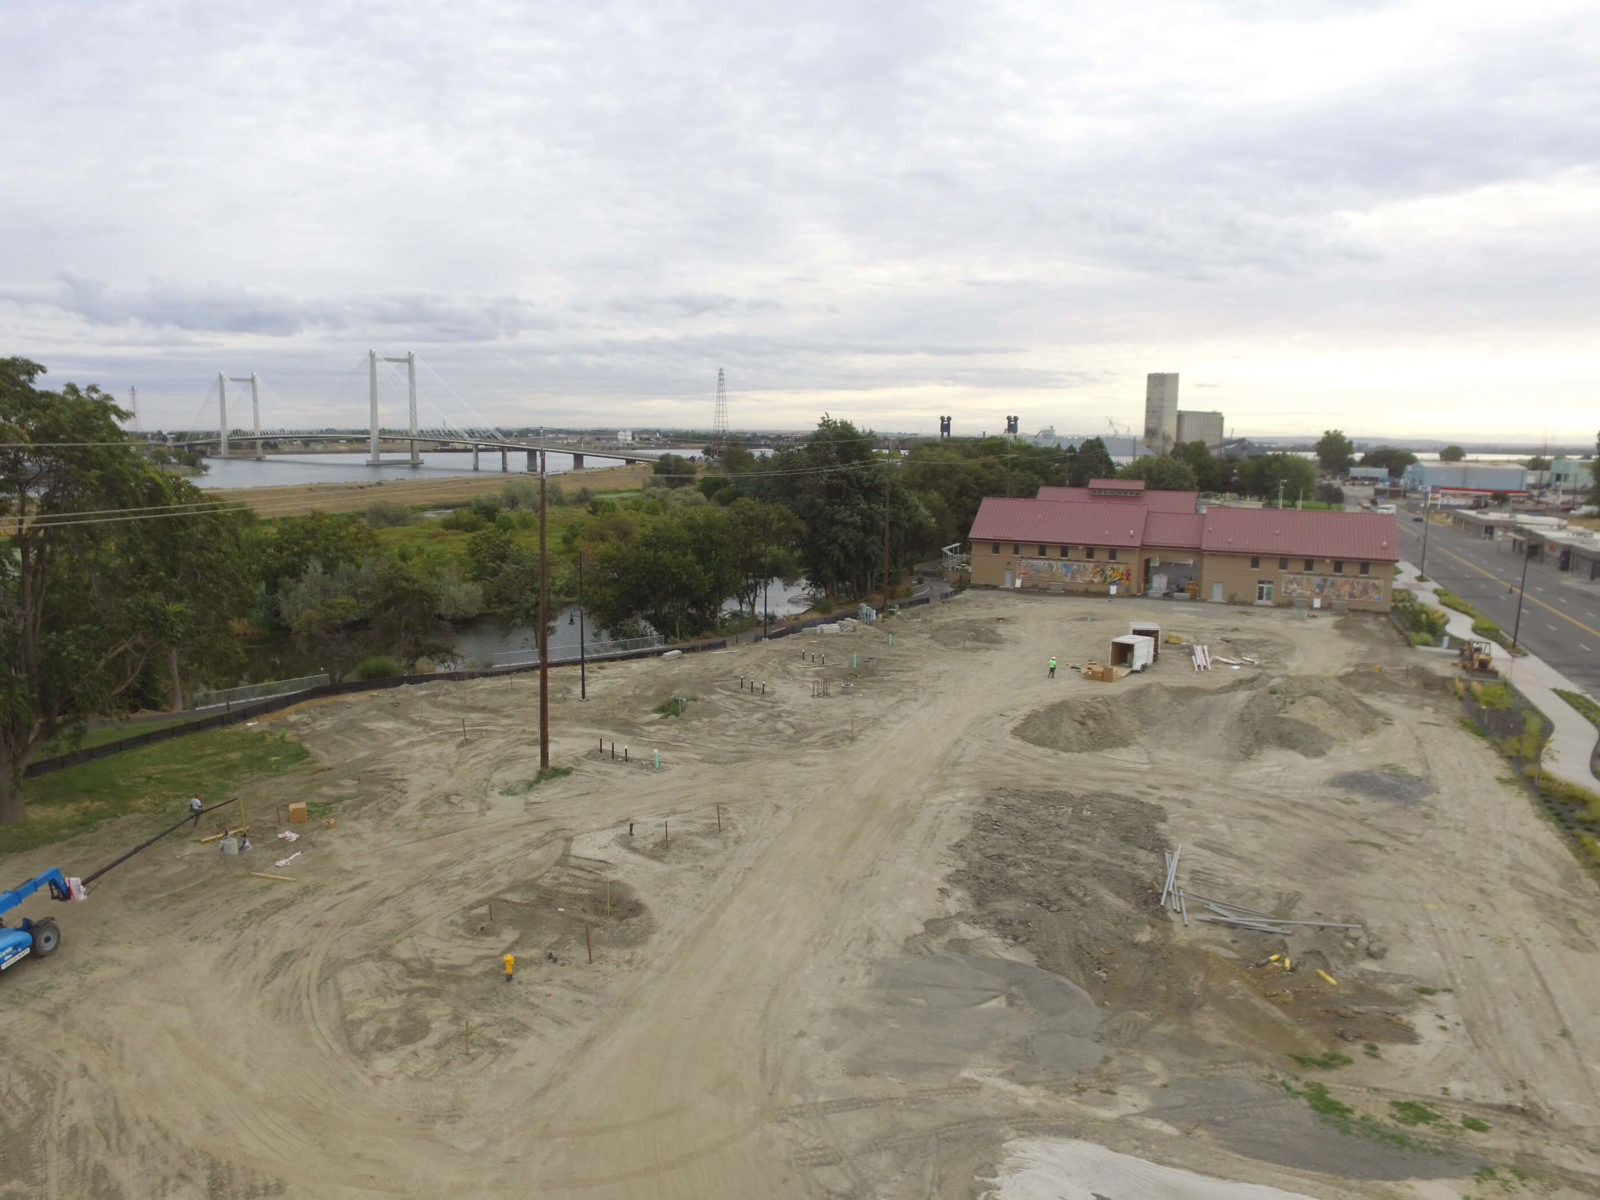 West-facing aerial showing Phase 2 dirt and equipment.